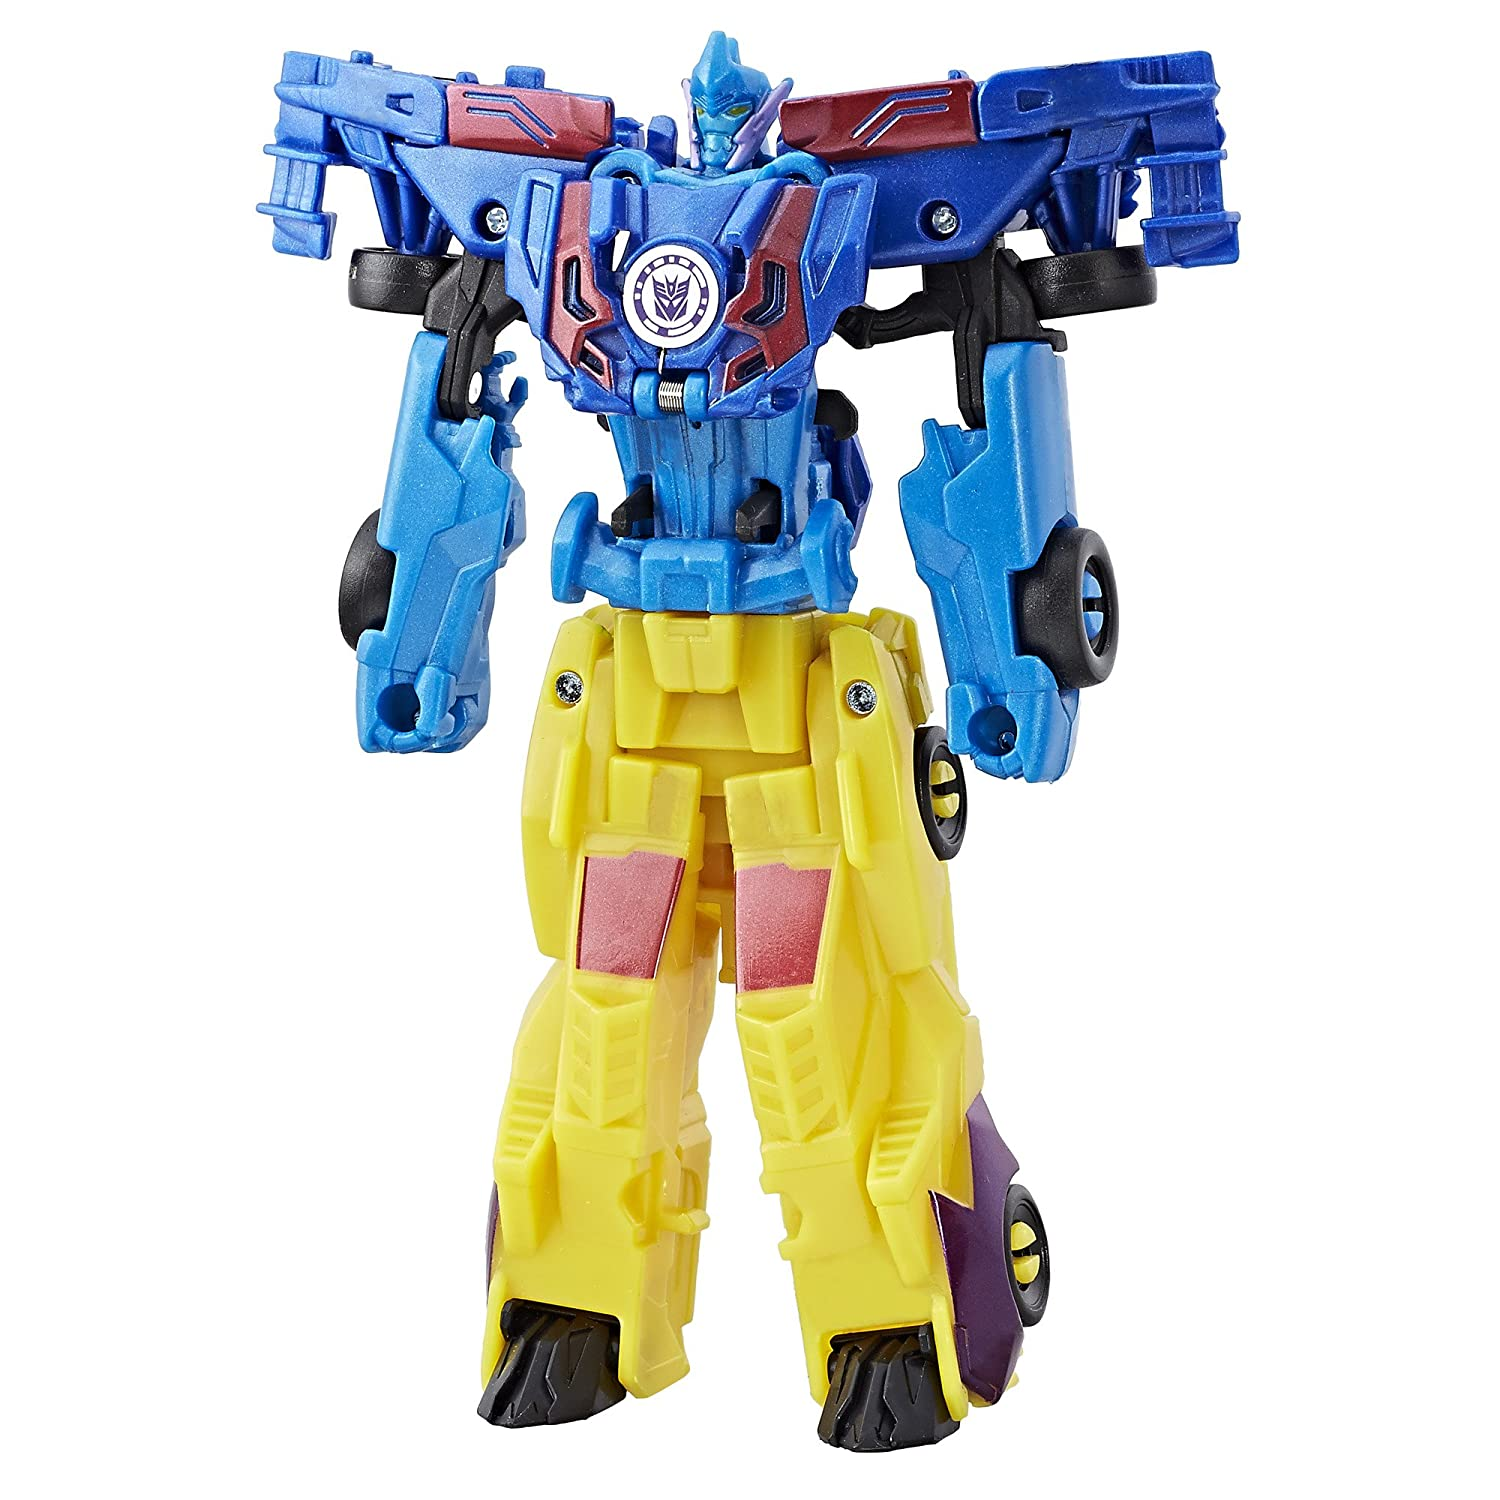 Transformers Robots in Disguise Crash Dec Dragster Wild Break Action Figure Hasbro C2342AS0